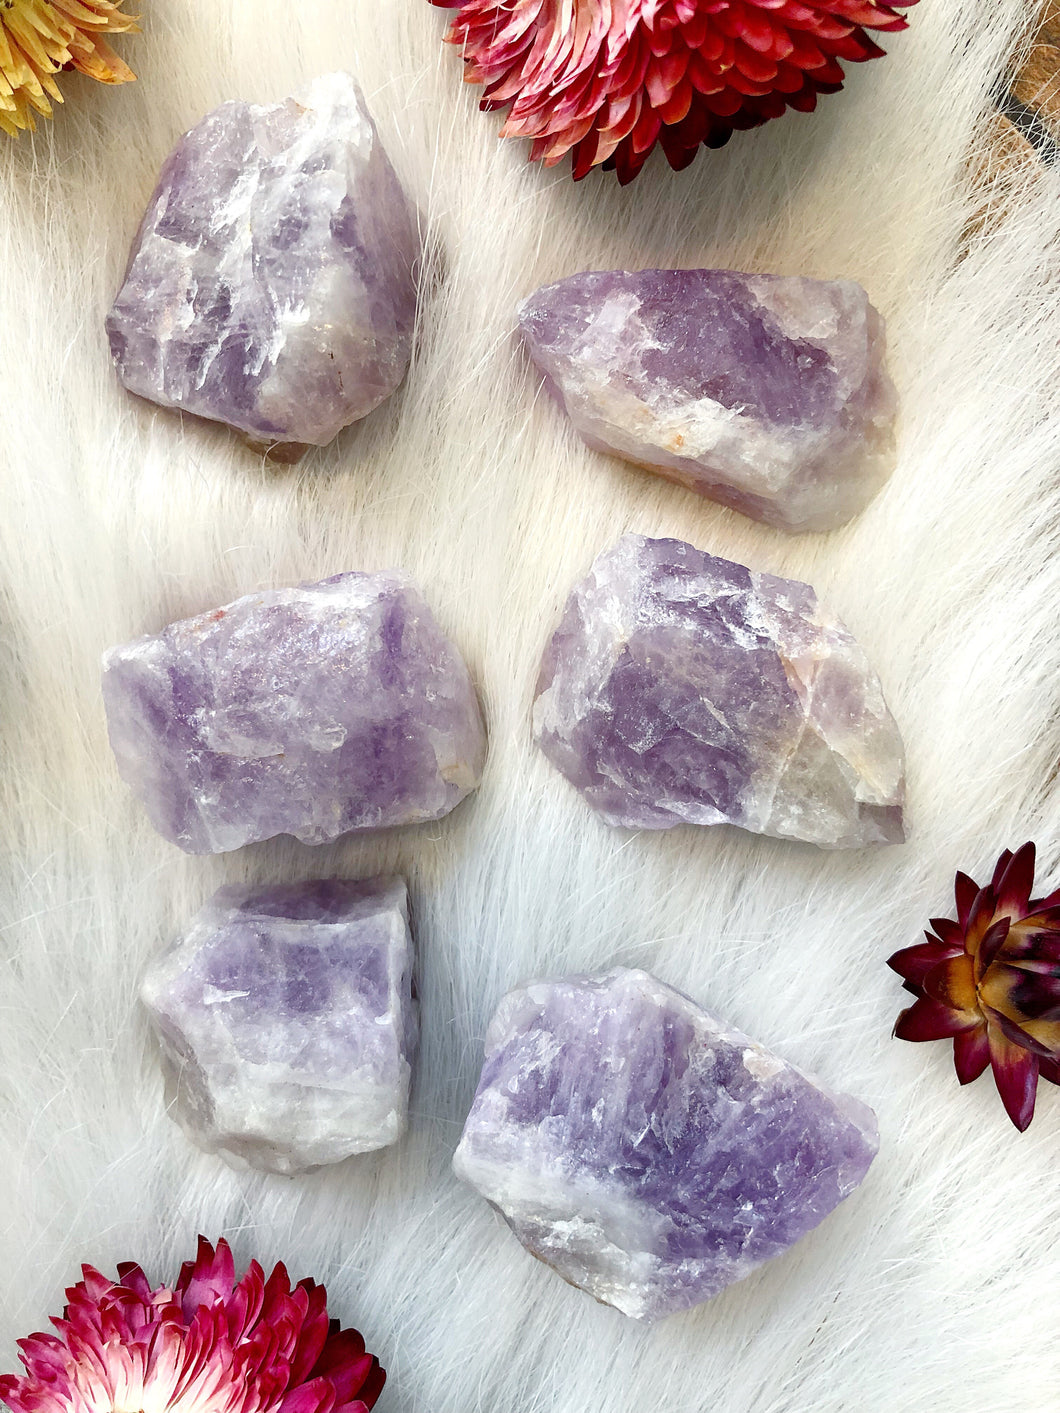 Amethyst Raw Rough Chunks for Intuition